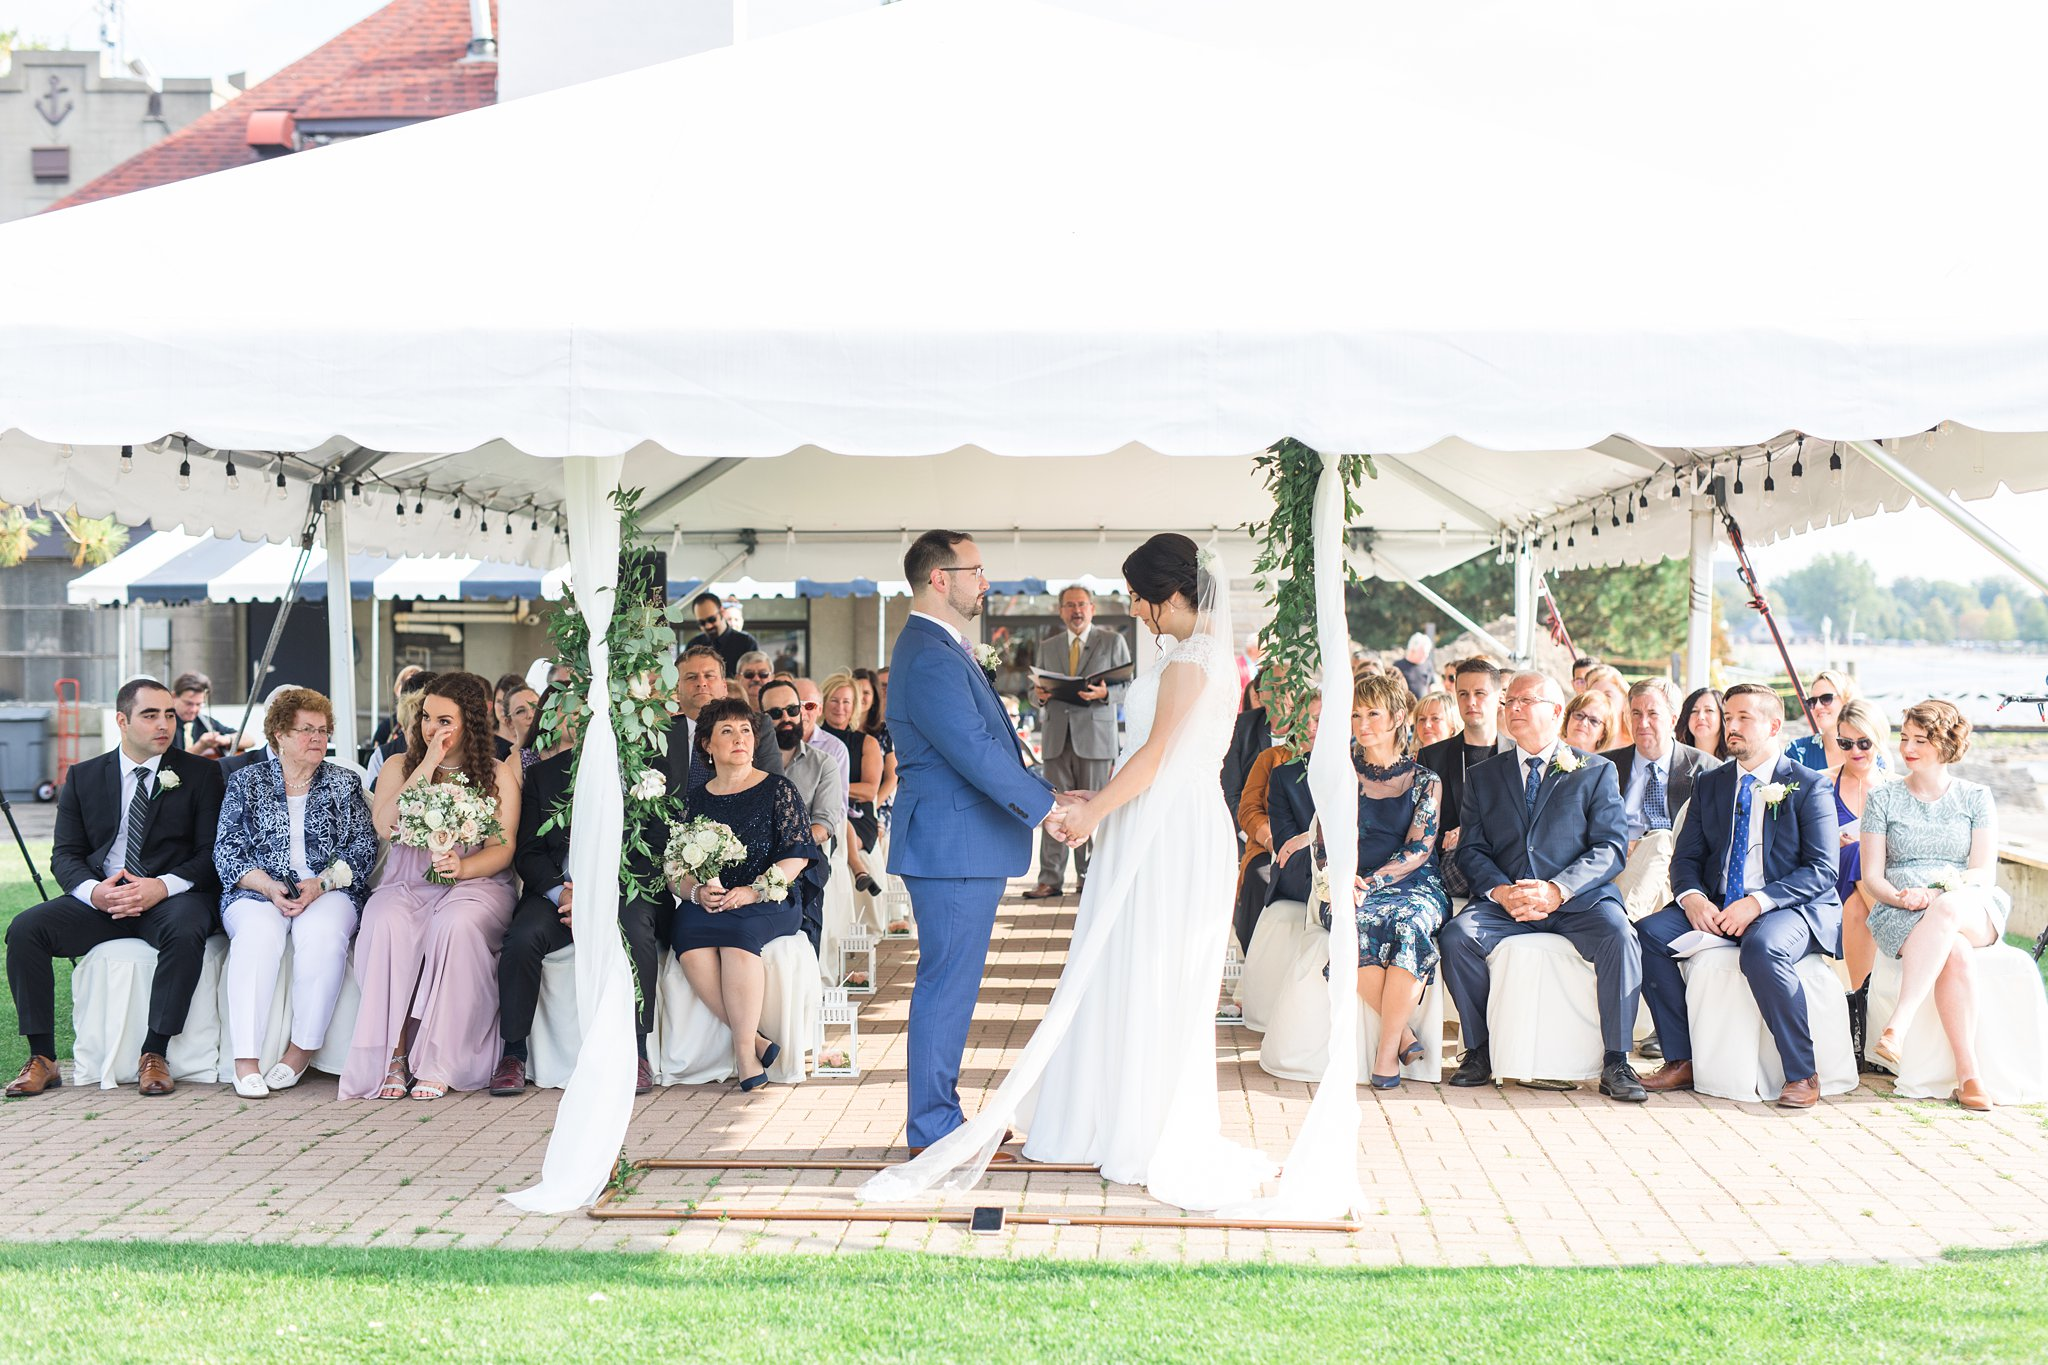 Tent ceremony in Ottawa by the water, Britannia Yacht Club Wedding Photos, Amy Pinder Photography